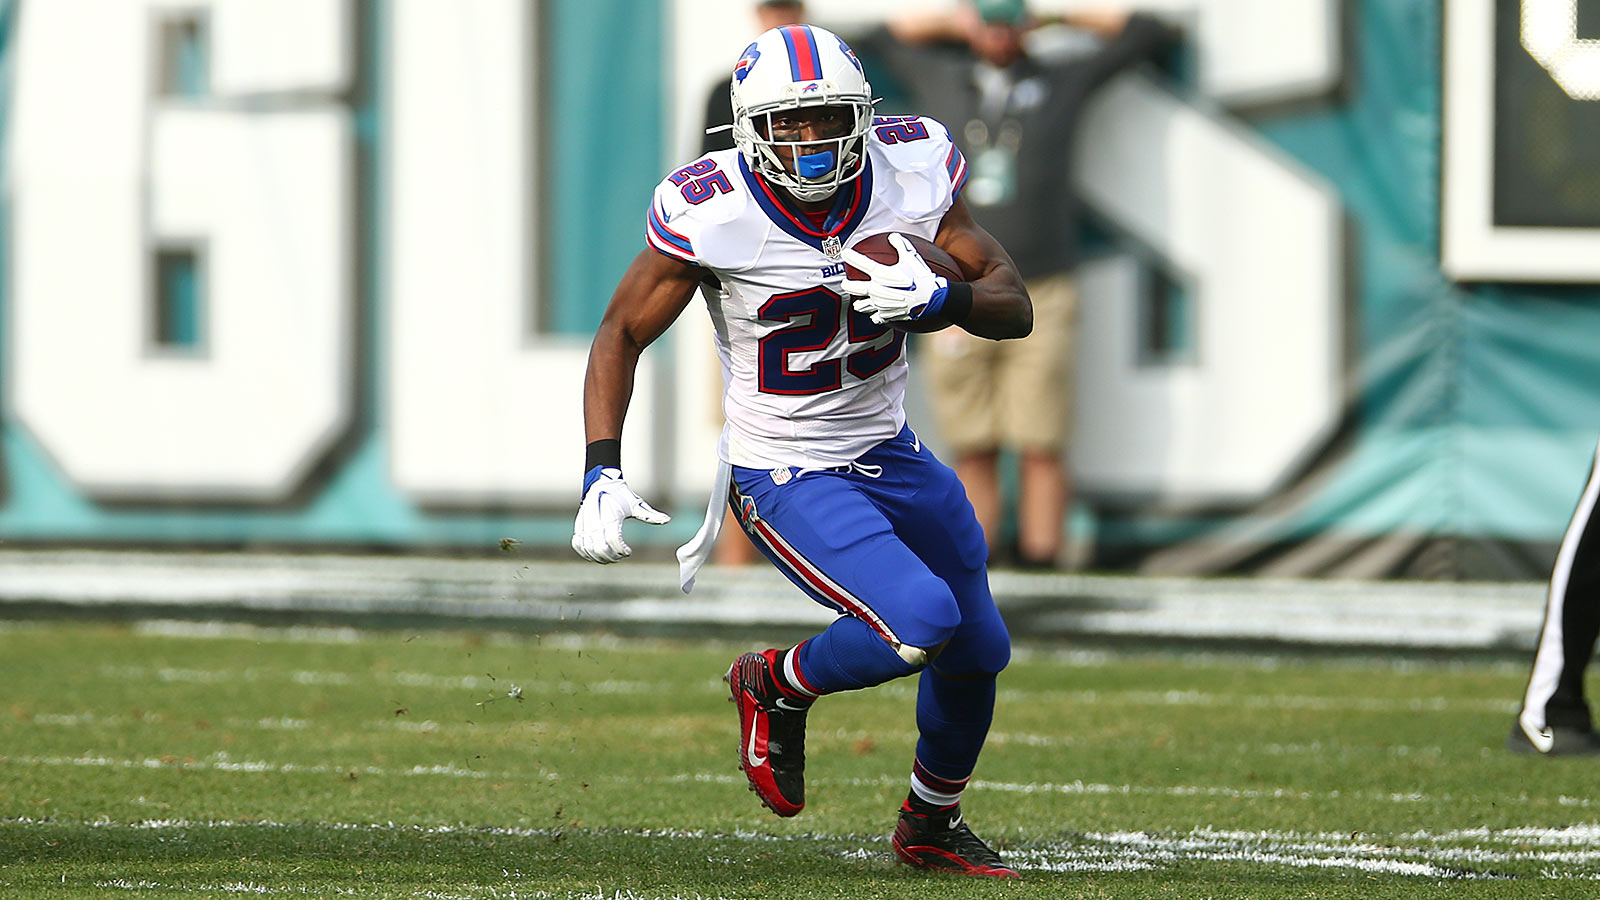 LeSean McCoy expected to miss Bills finale against Jets